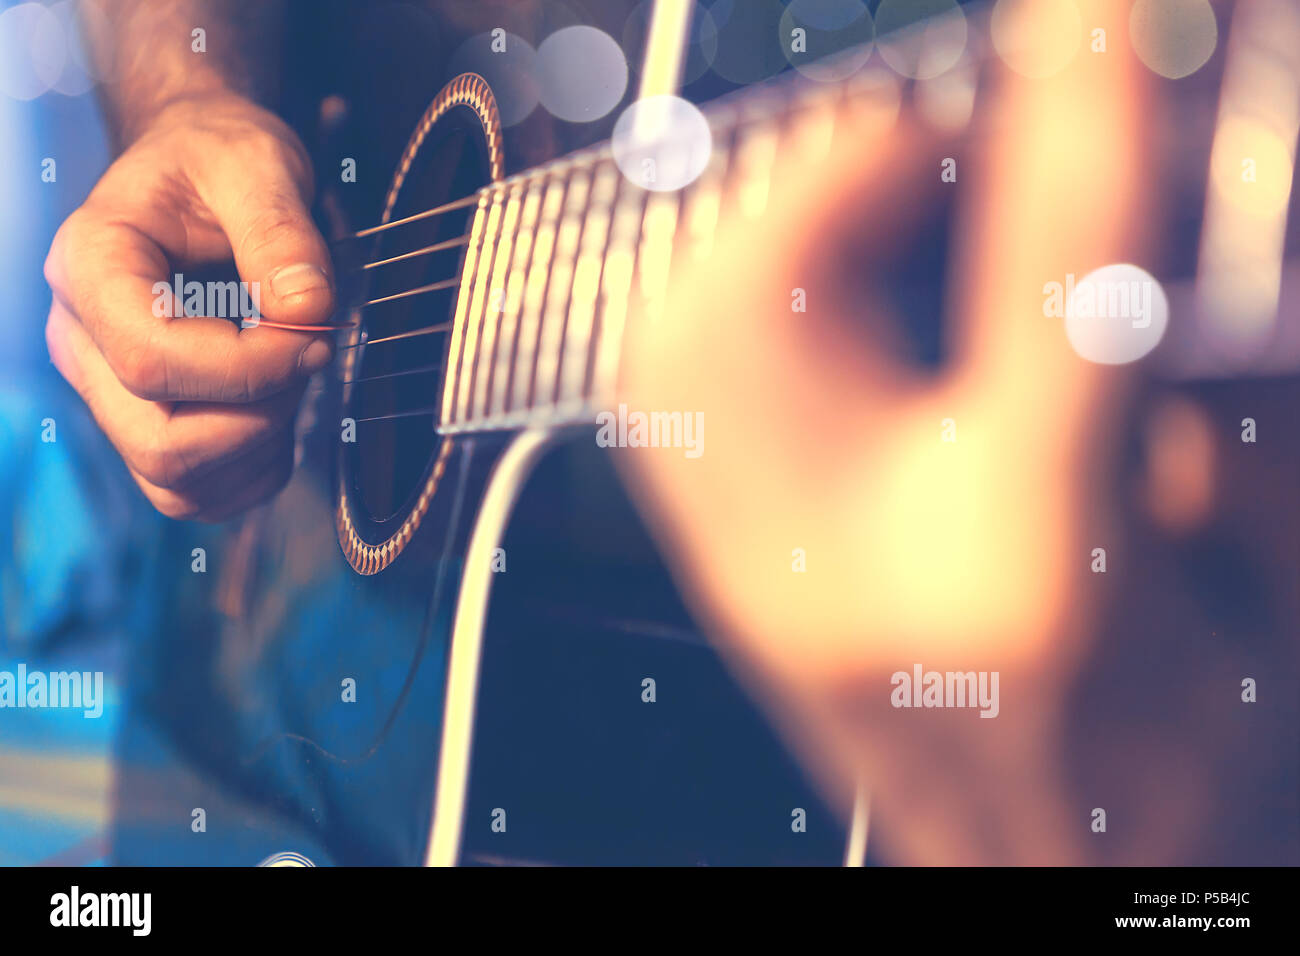 Acoustic guitar and guitarist detail - Stock Image